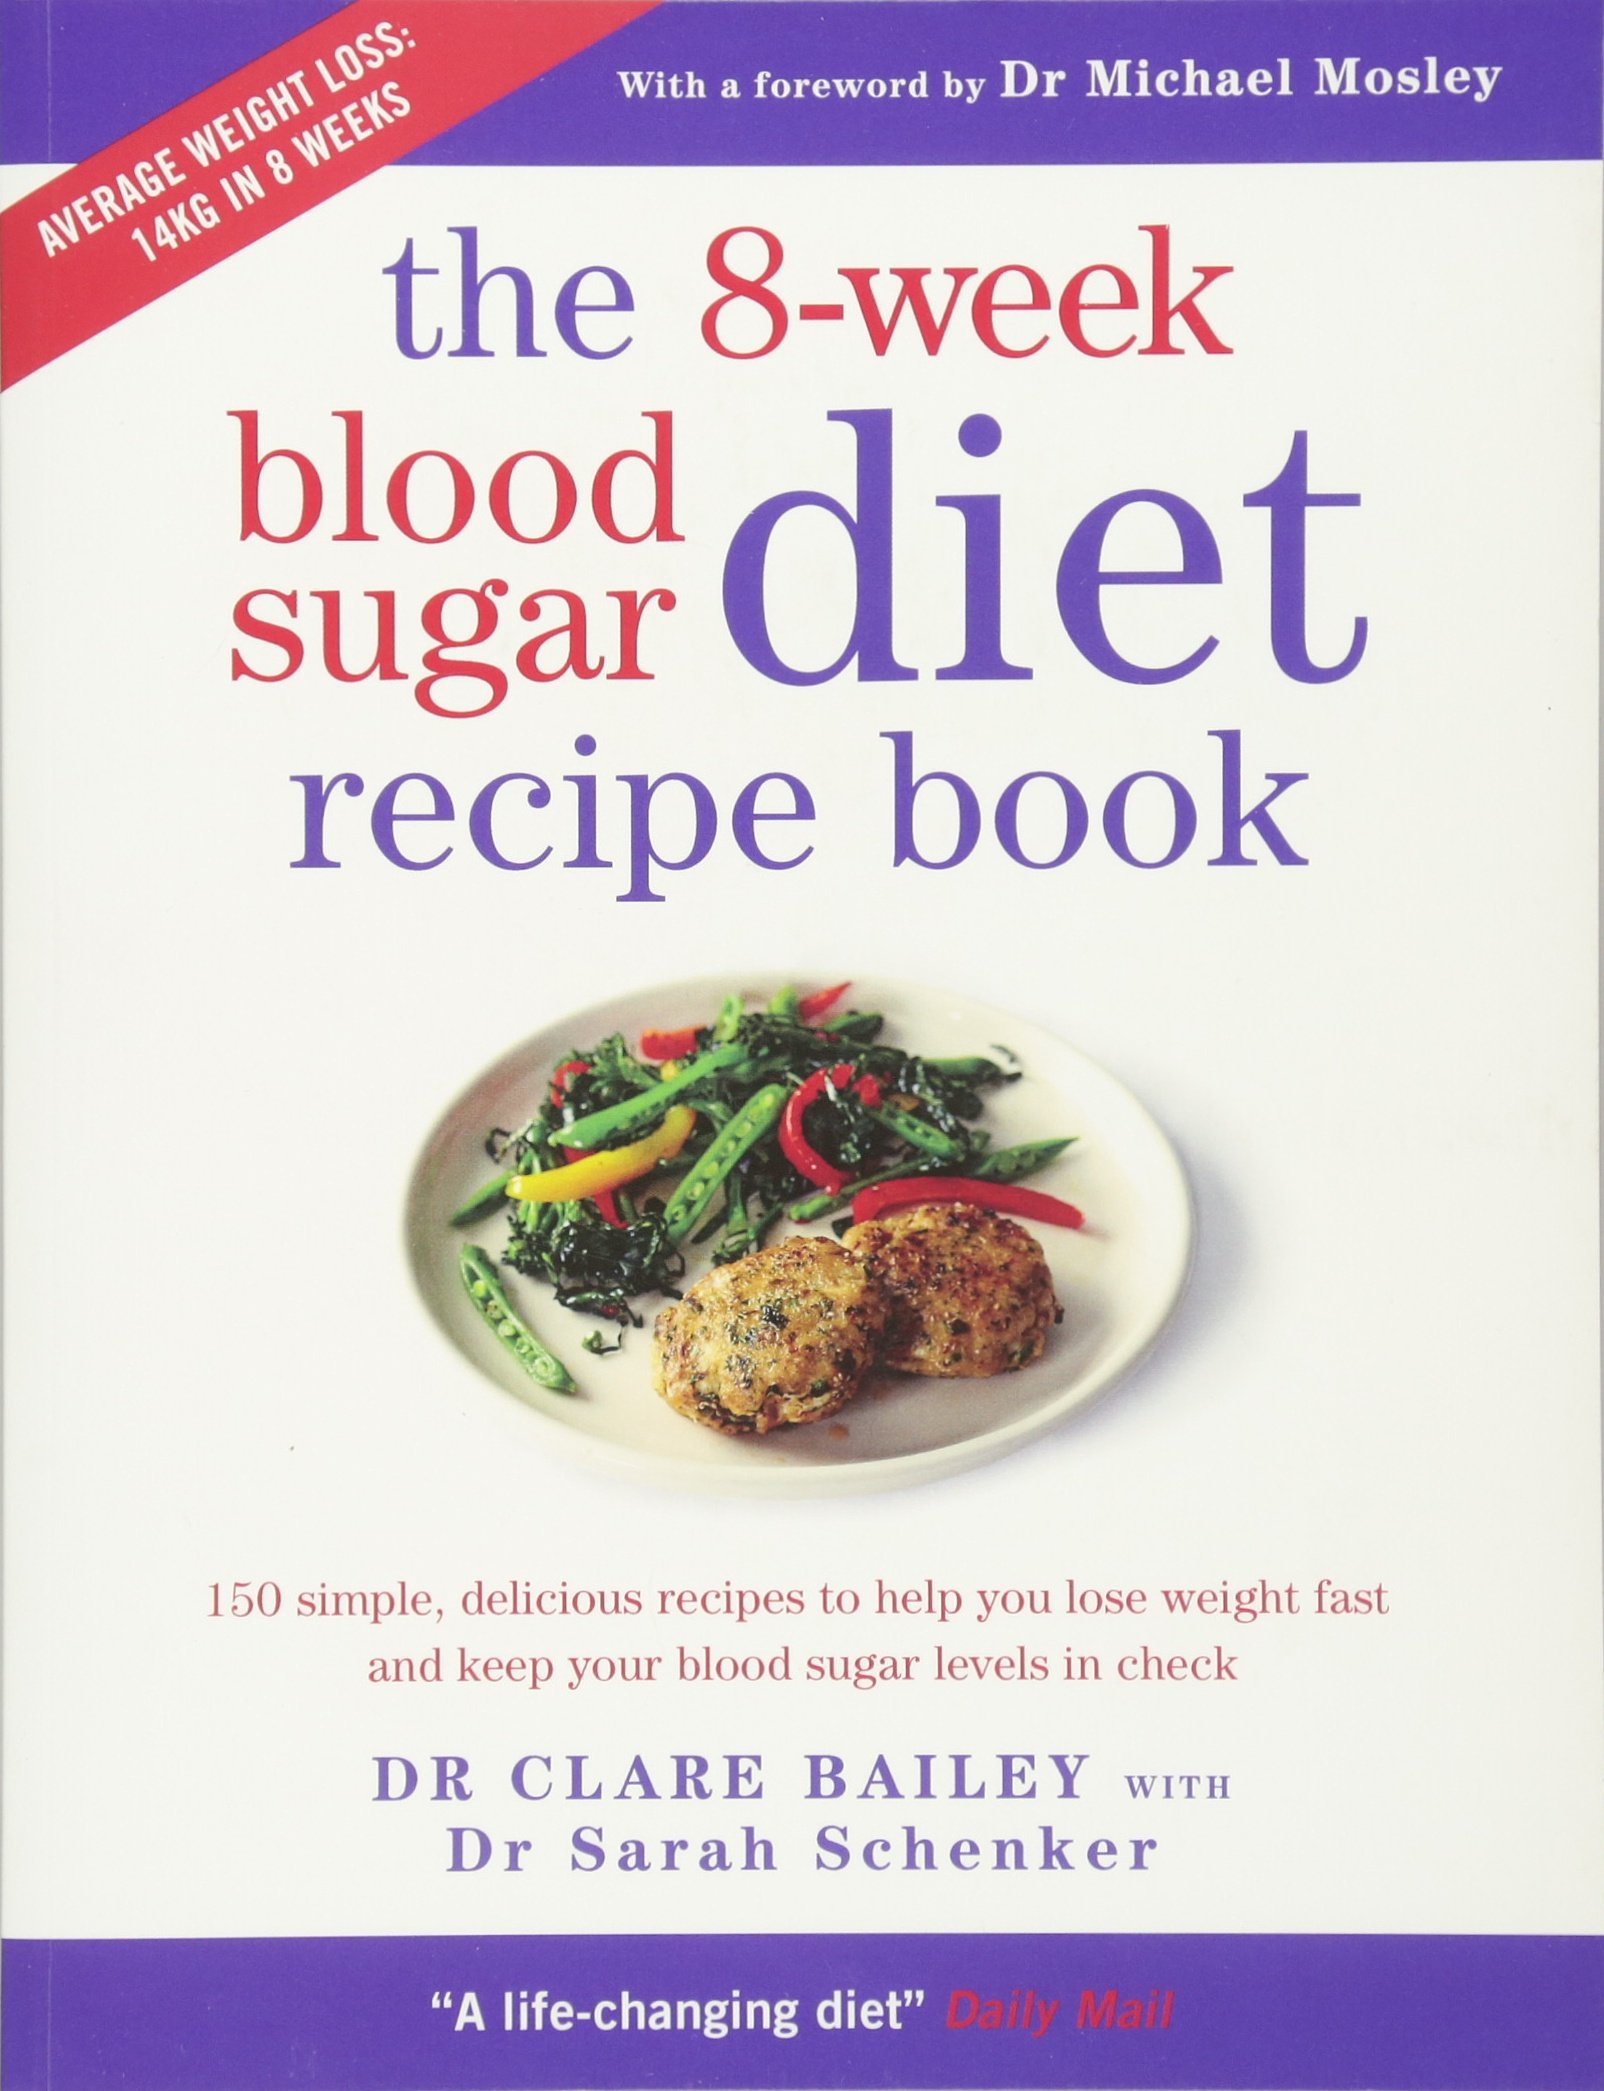 The 8 week blood sugar diet recipe book the 8 week blood sugar diet recipe book amazon clare bailey sarah schenker michael mosley 9781780722931 books forumfinder Image collections